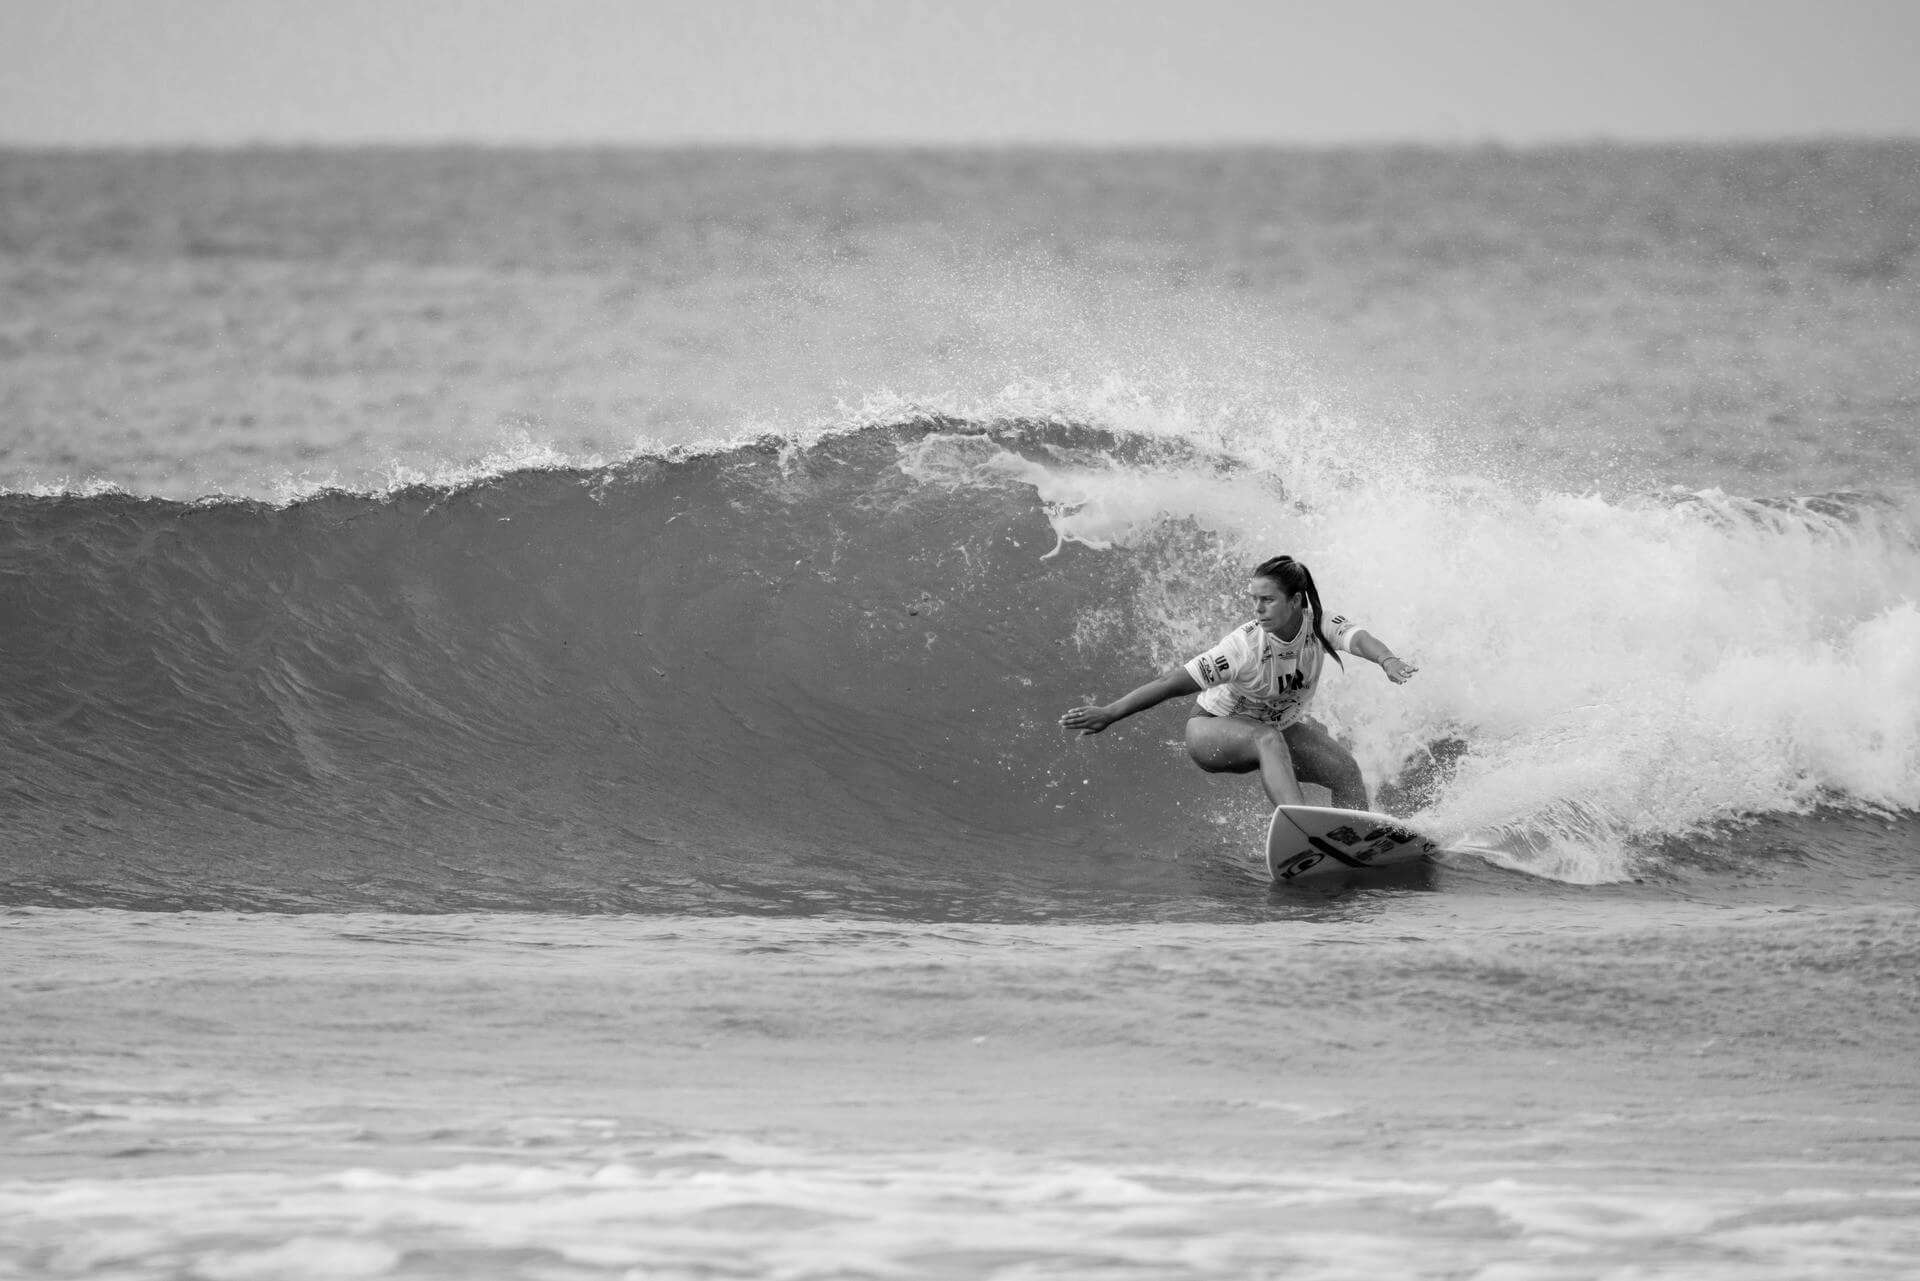 Paige Hareb— The Fiercest NZ Female Surfer making waves all over the world 2